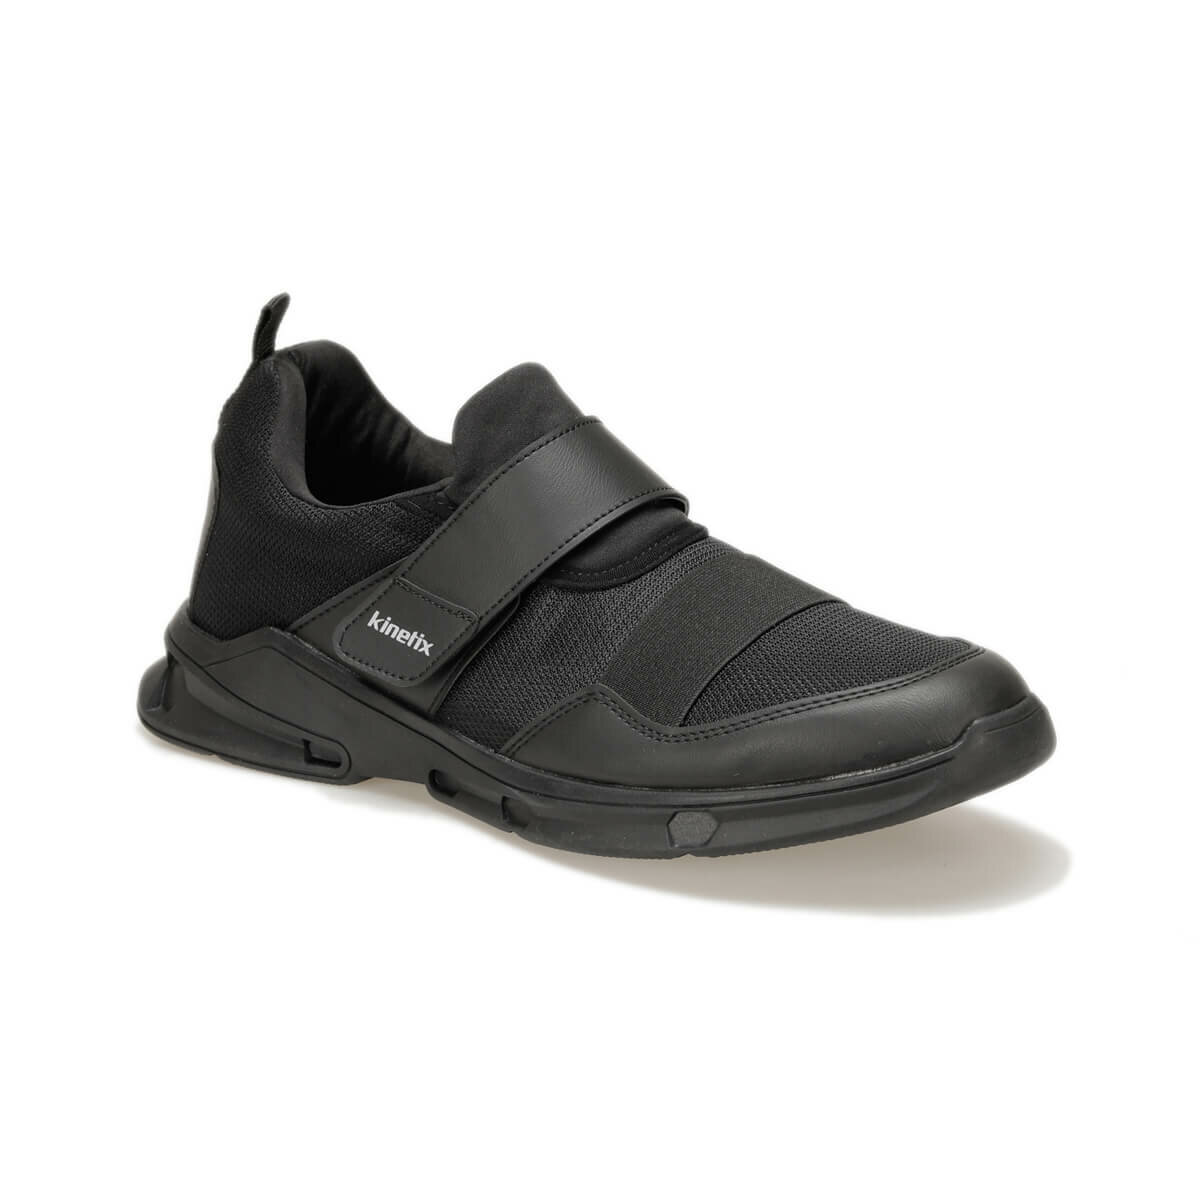 FLO VELAR 9PR Black Slip On Shoes KINETIX